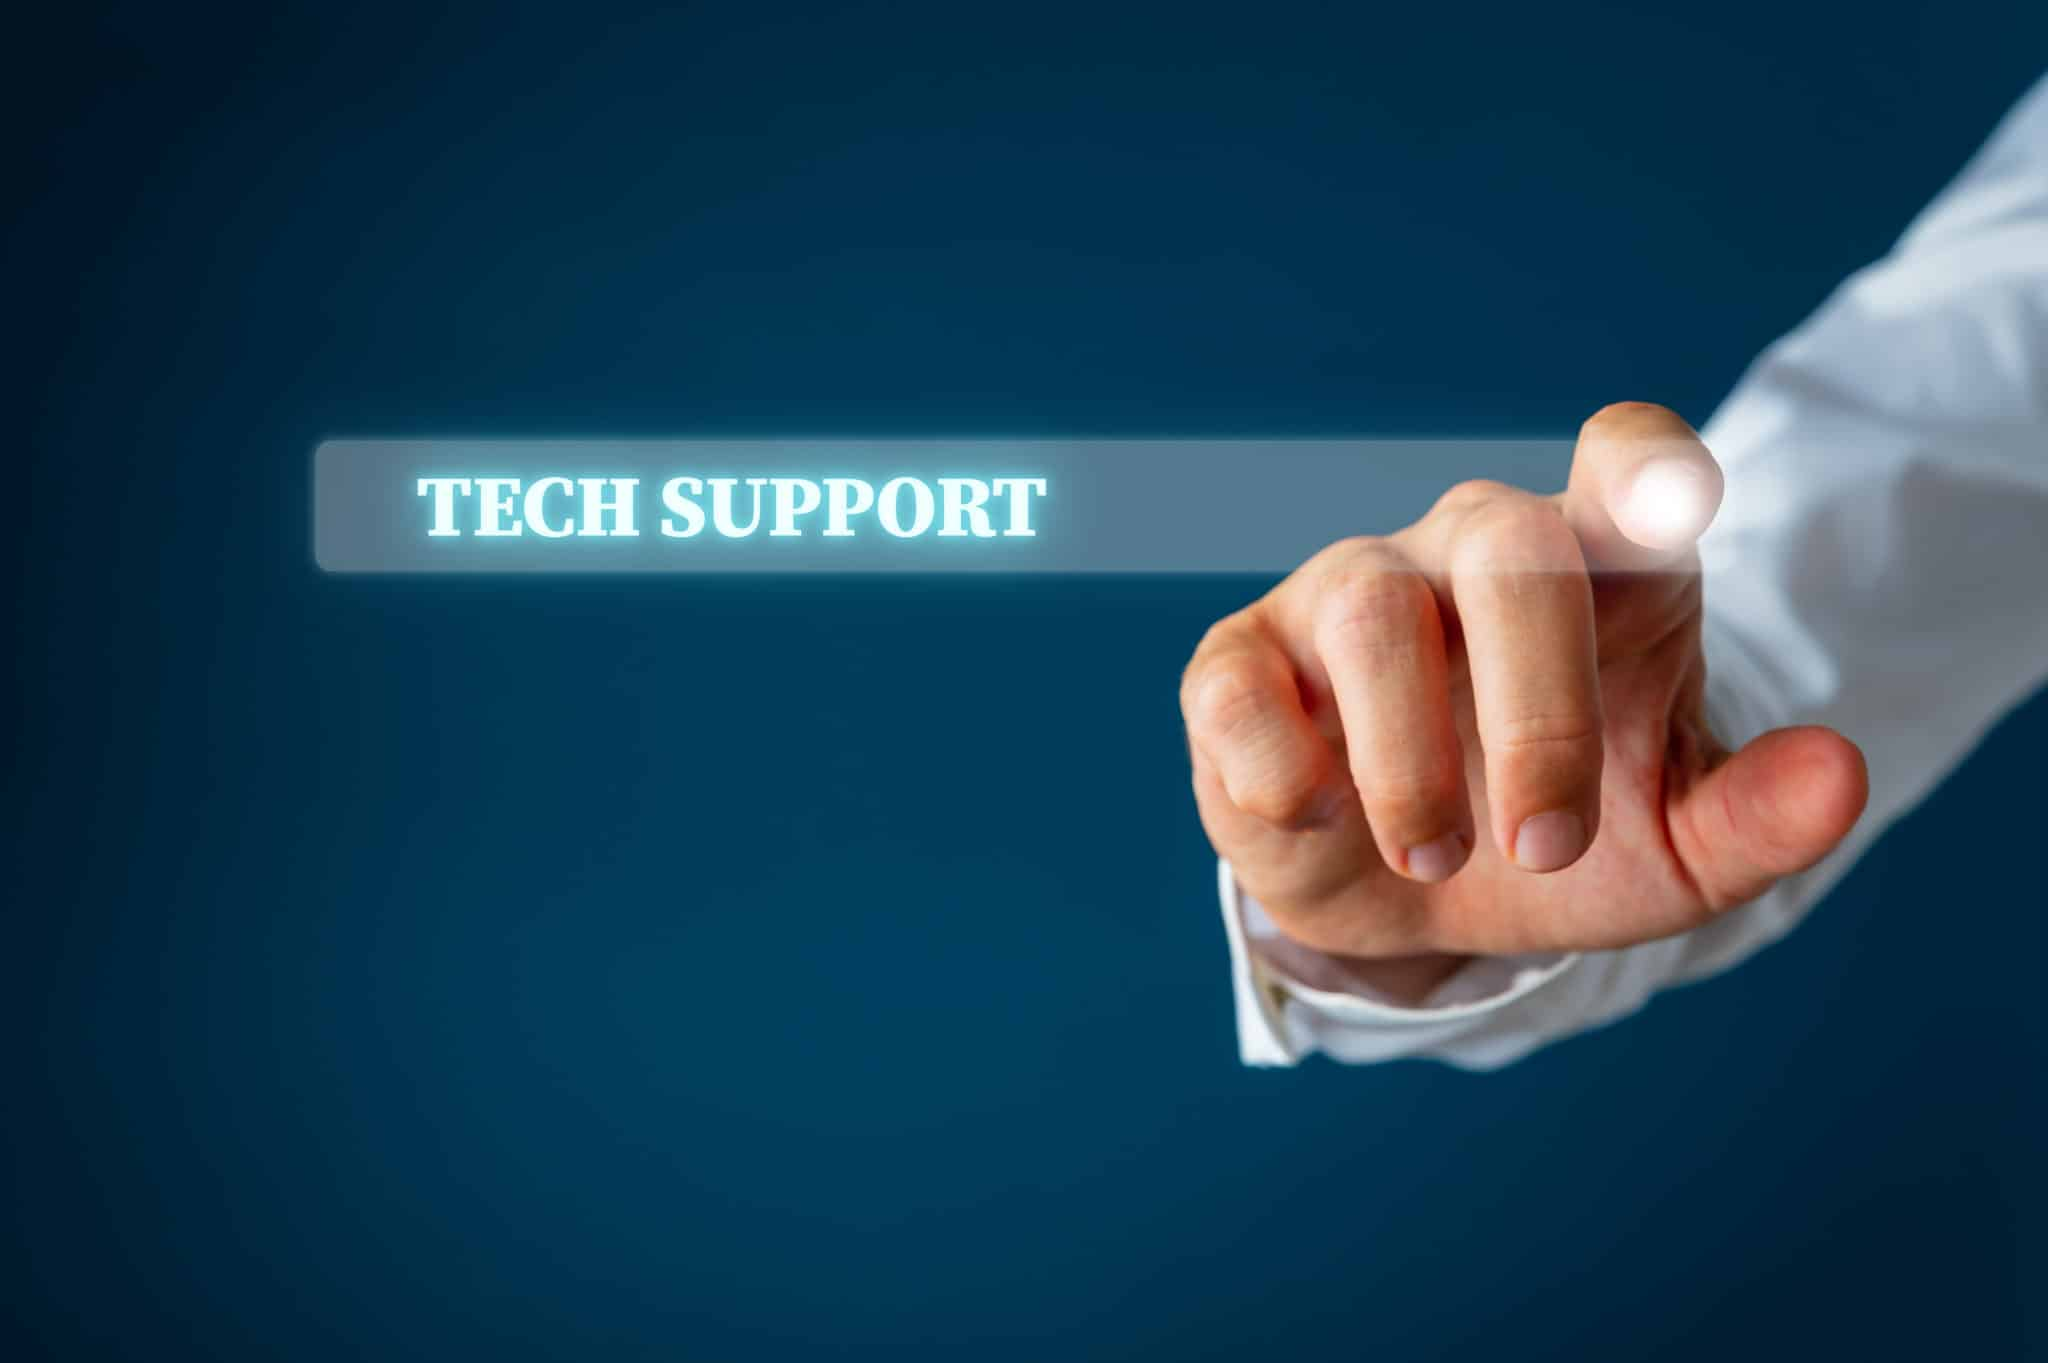 IT Support Business